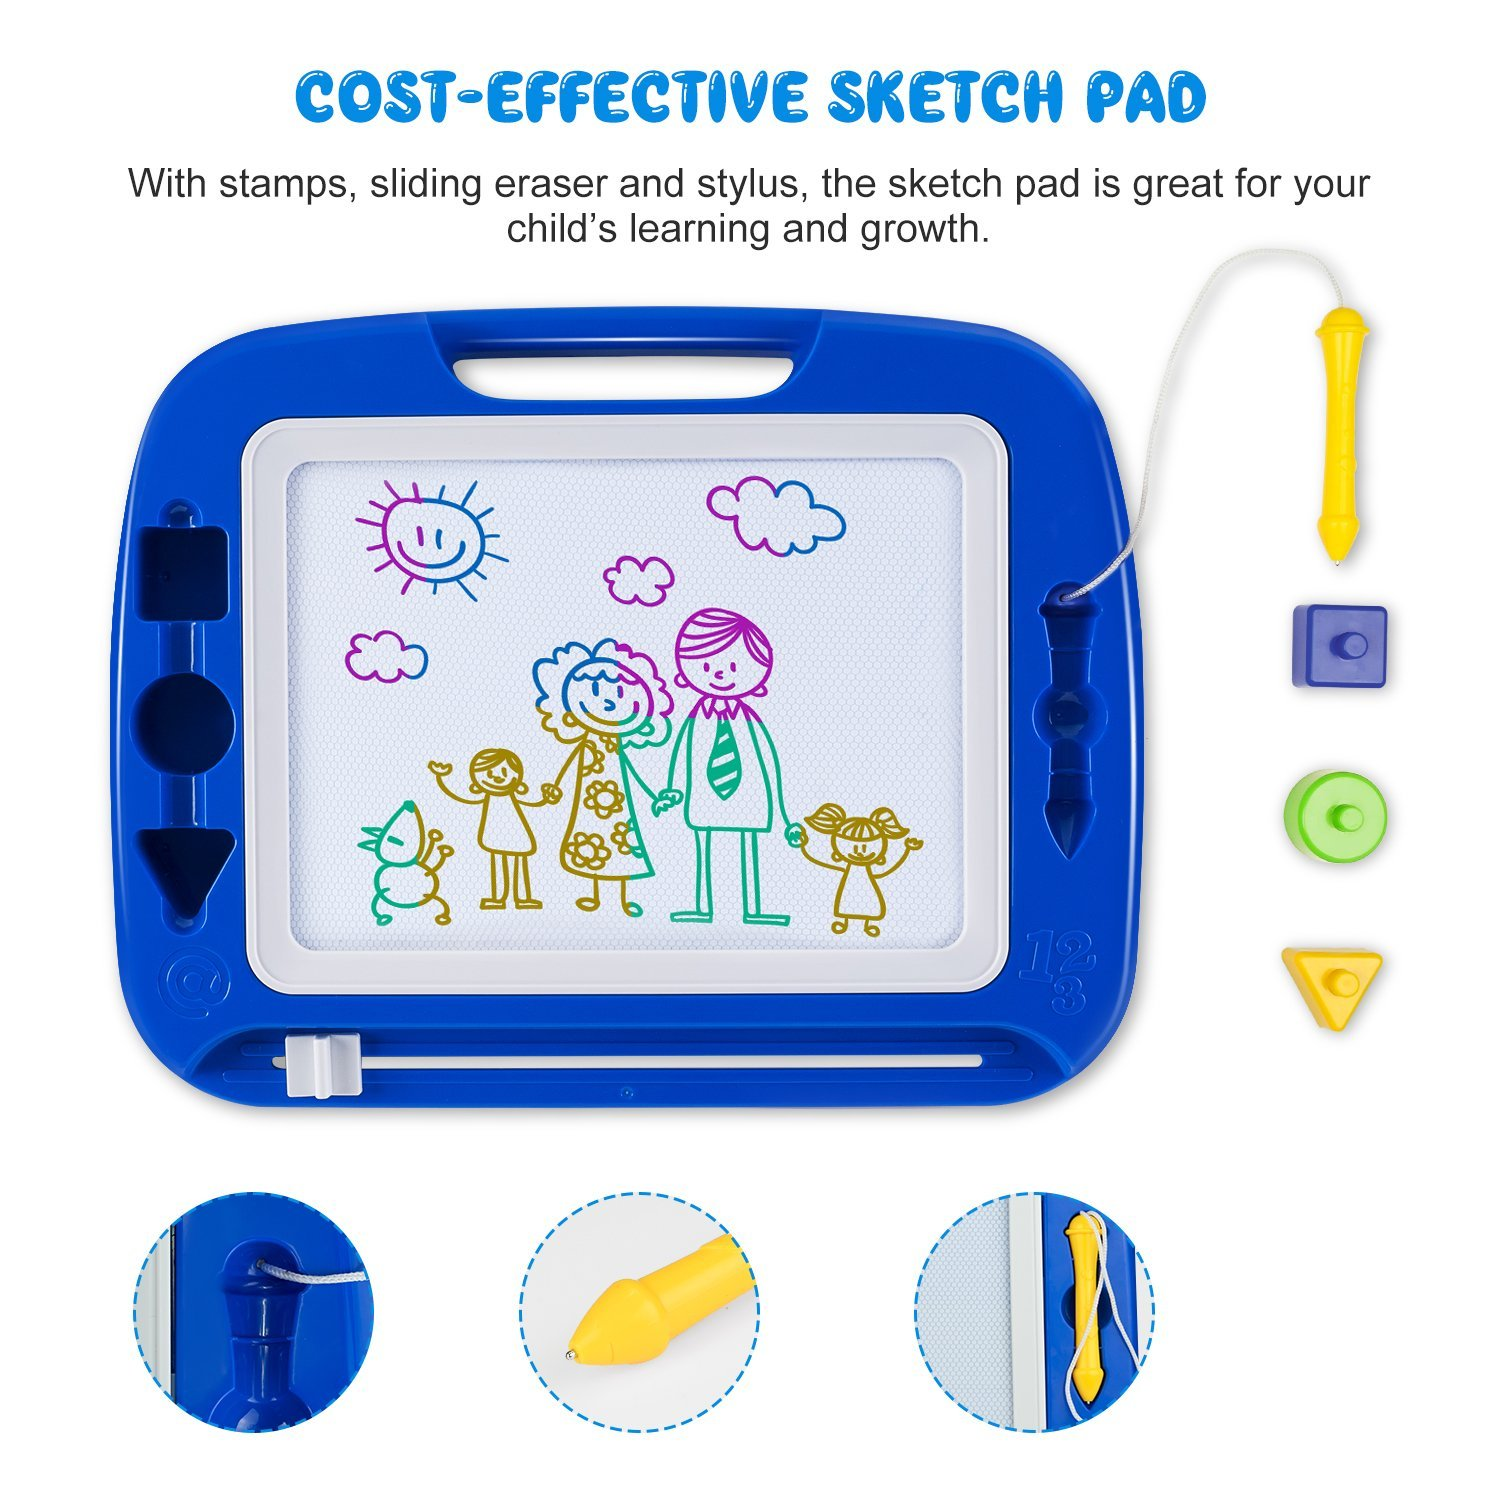 SGILE Magnetic Drawing Board, 13X16 Non-Toxic Big Magnetic Erasable Magna Doodle Toy, Assorted Colors Writing Painting Sketching Pad for Toddler Boy Girl Kids Skill Development, Blue( Extra Large) by SGILE (Image #3)